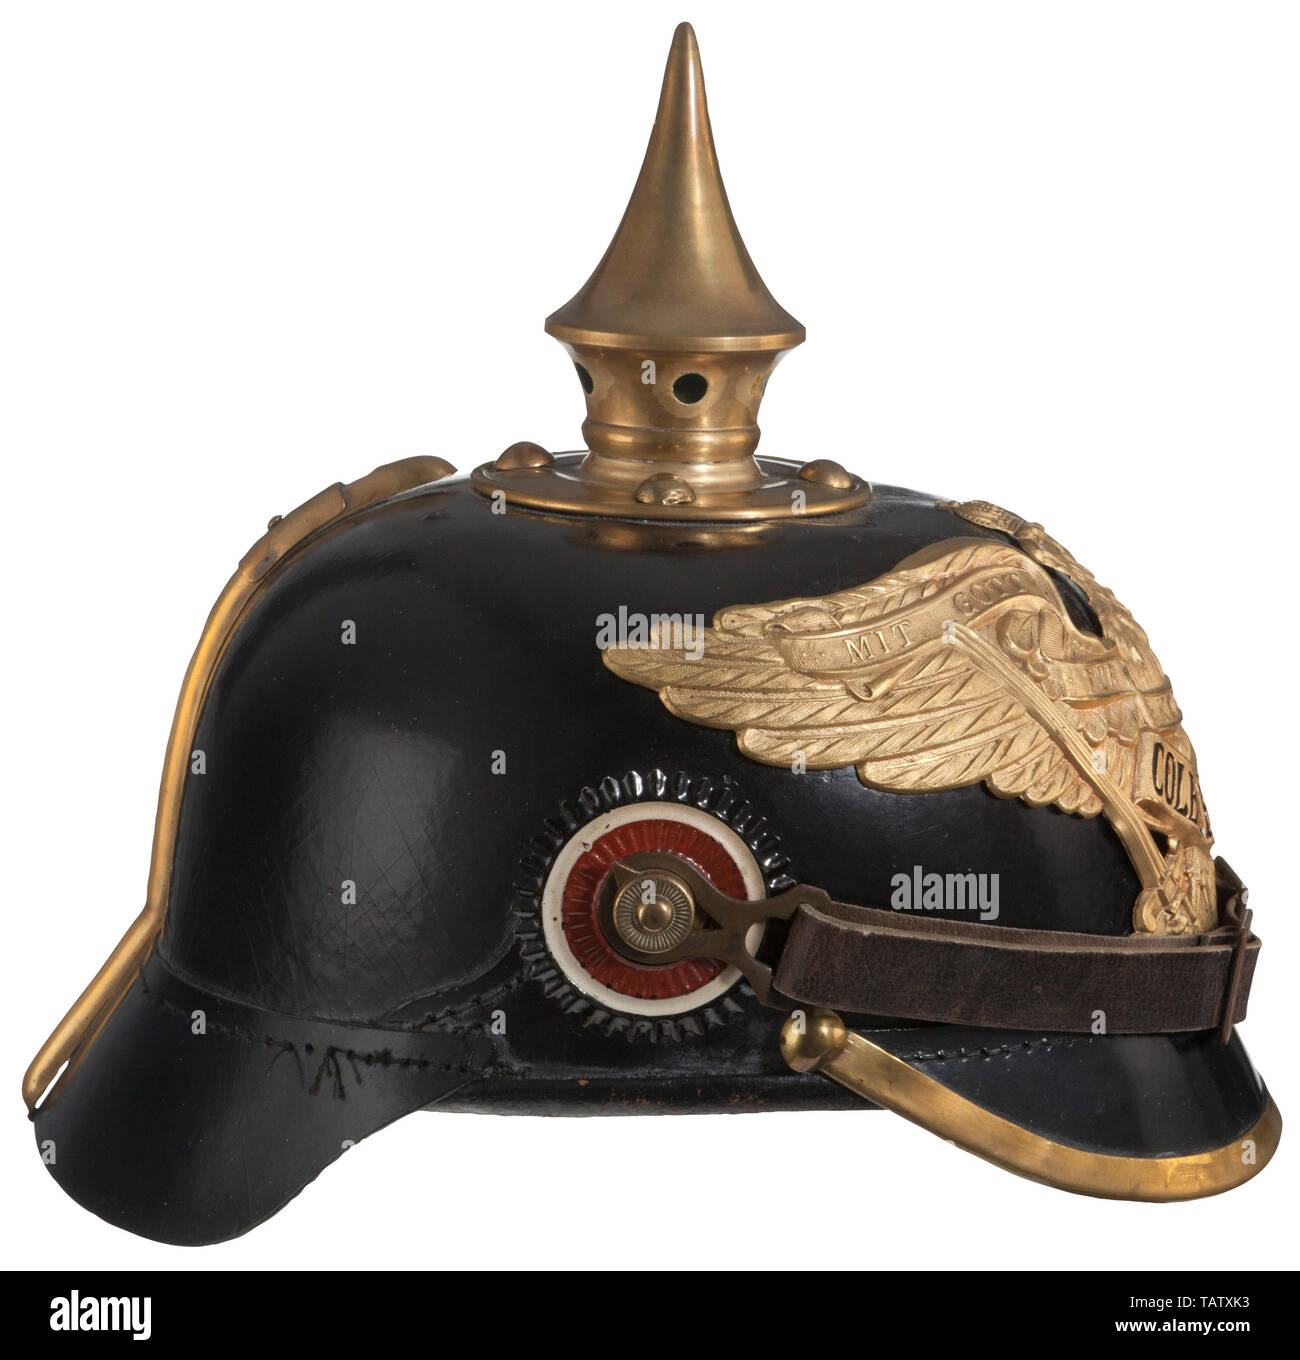 IMPERIAL GERMANY UNTIL 1914, An imperial German helmet M 1899 for enlisted men of the 9th Grenadier Infantry Regiment Black leather maker marked body with front and rear visors, good condition, brown leather lining stamped '1915', private purchase gilt Prussian grenadier eagle with 'Colberg 1807' honour banner attached by two nuts and screw posts, spike, base, spline, 91 lugs and front visor trim made of brass, four spike base attachment brads with splintas, leather chinstraps with brass buckles and 91 lug mounts, EM national and Prussian state c, Additional-Rights-Clearance-Info-Not-Available - Stock Image